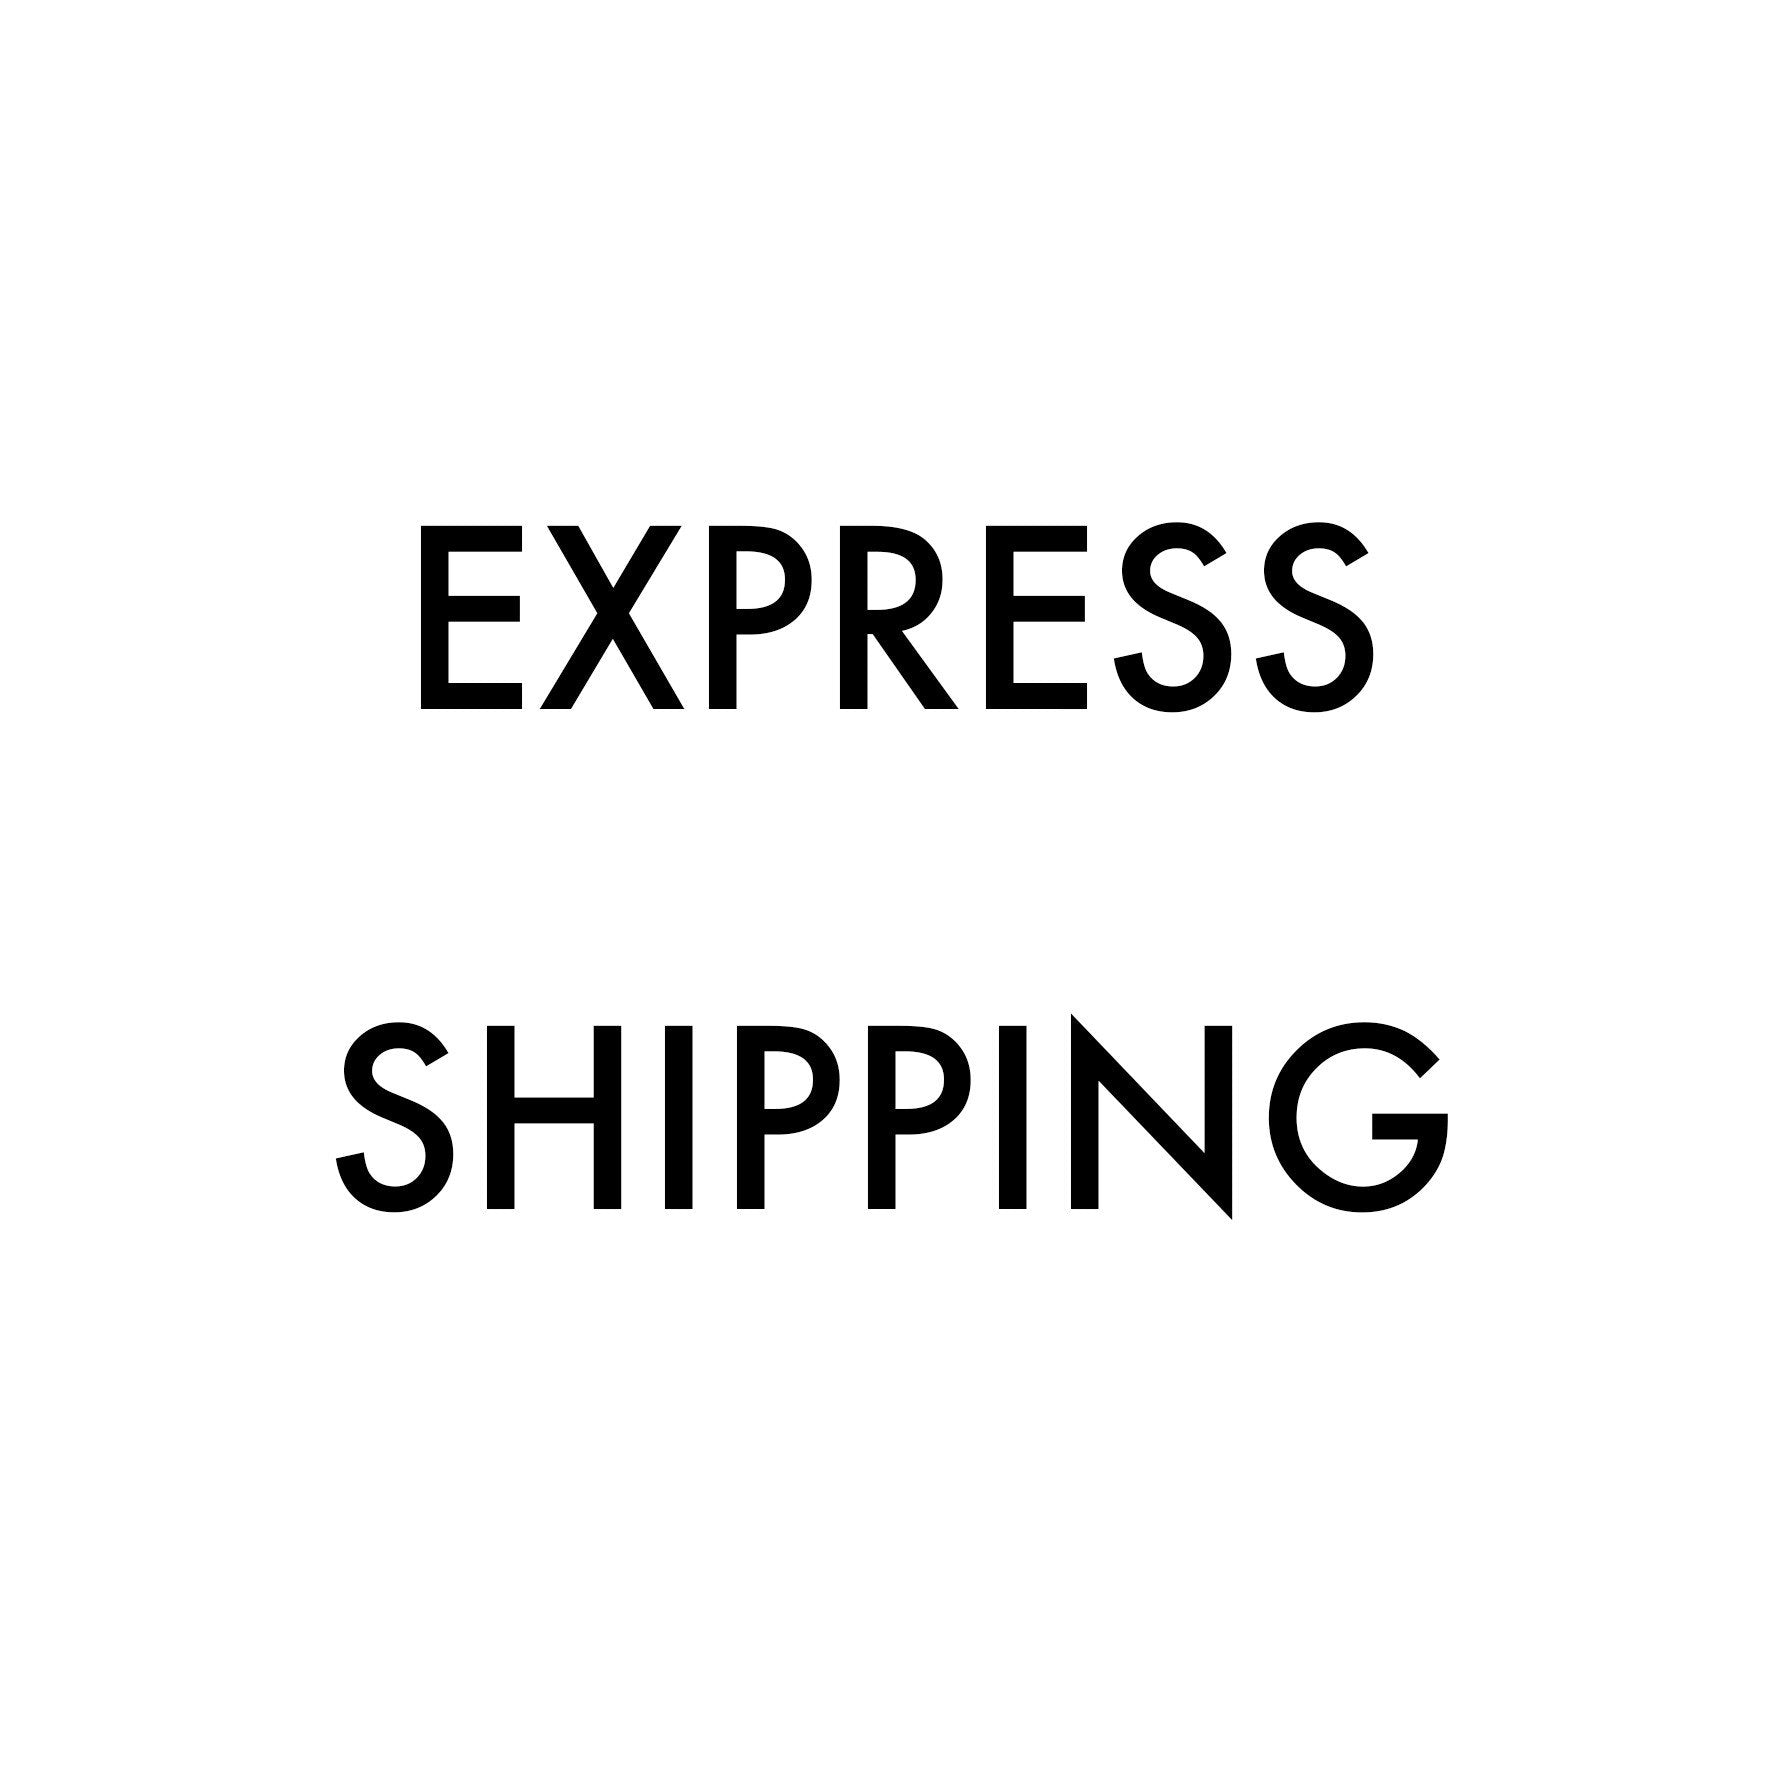 Purchase Express Shipping to add to your order